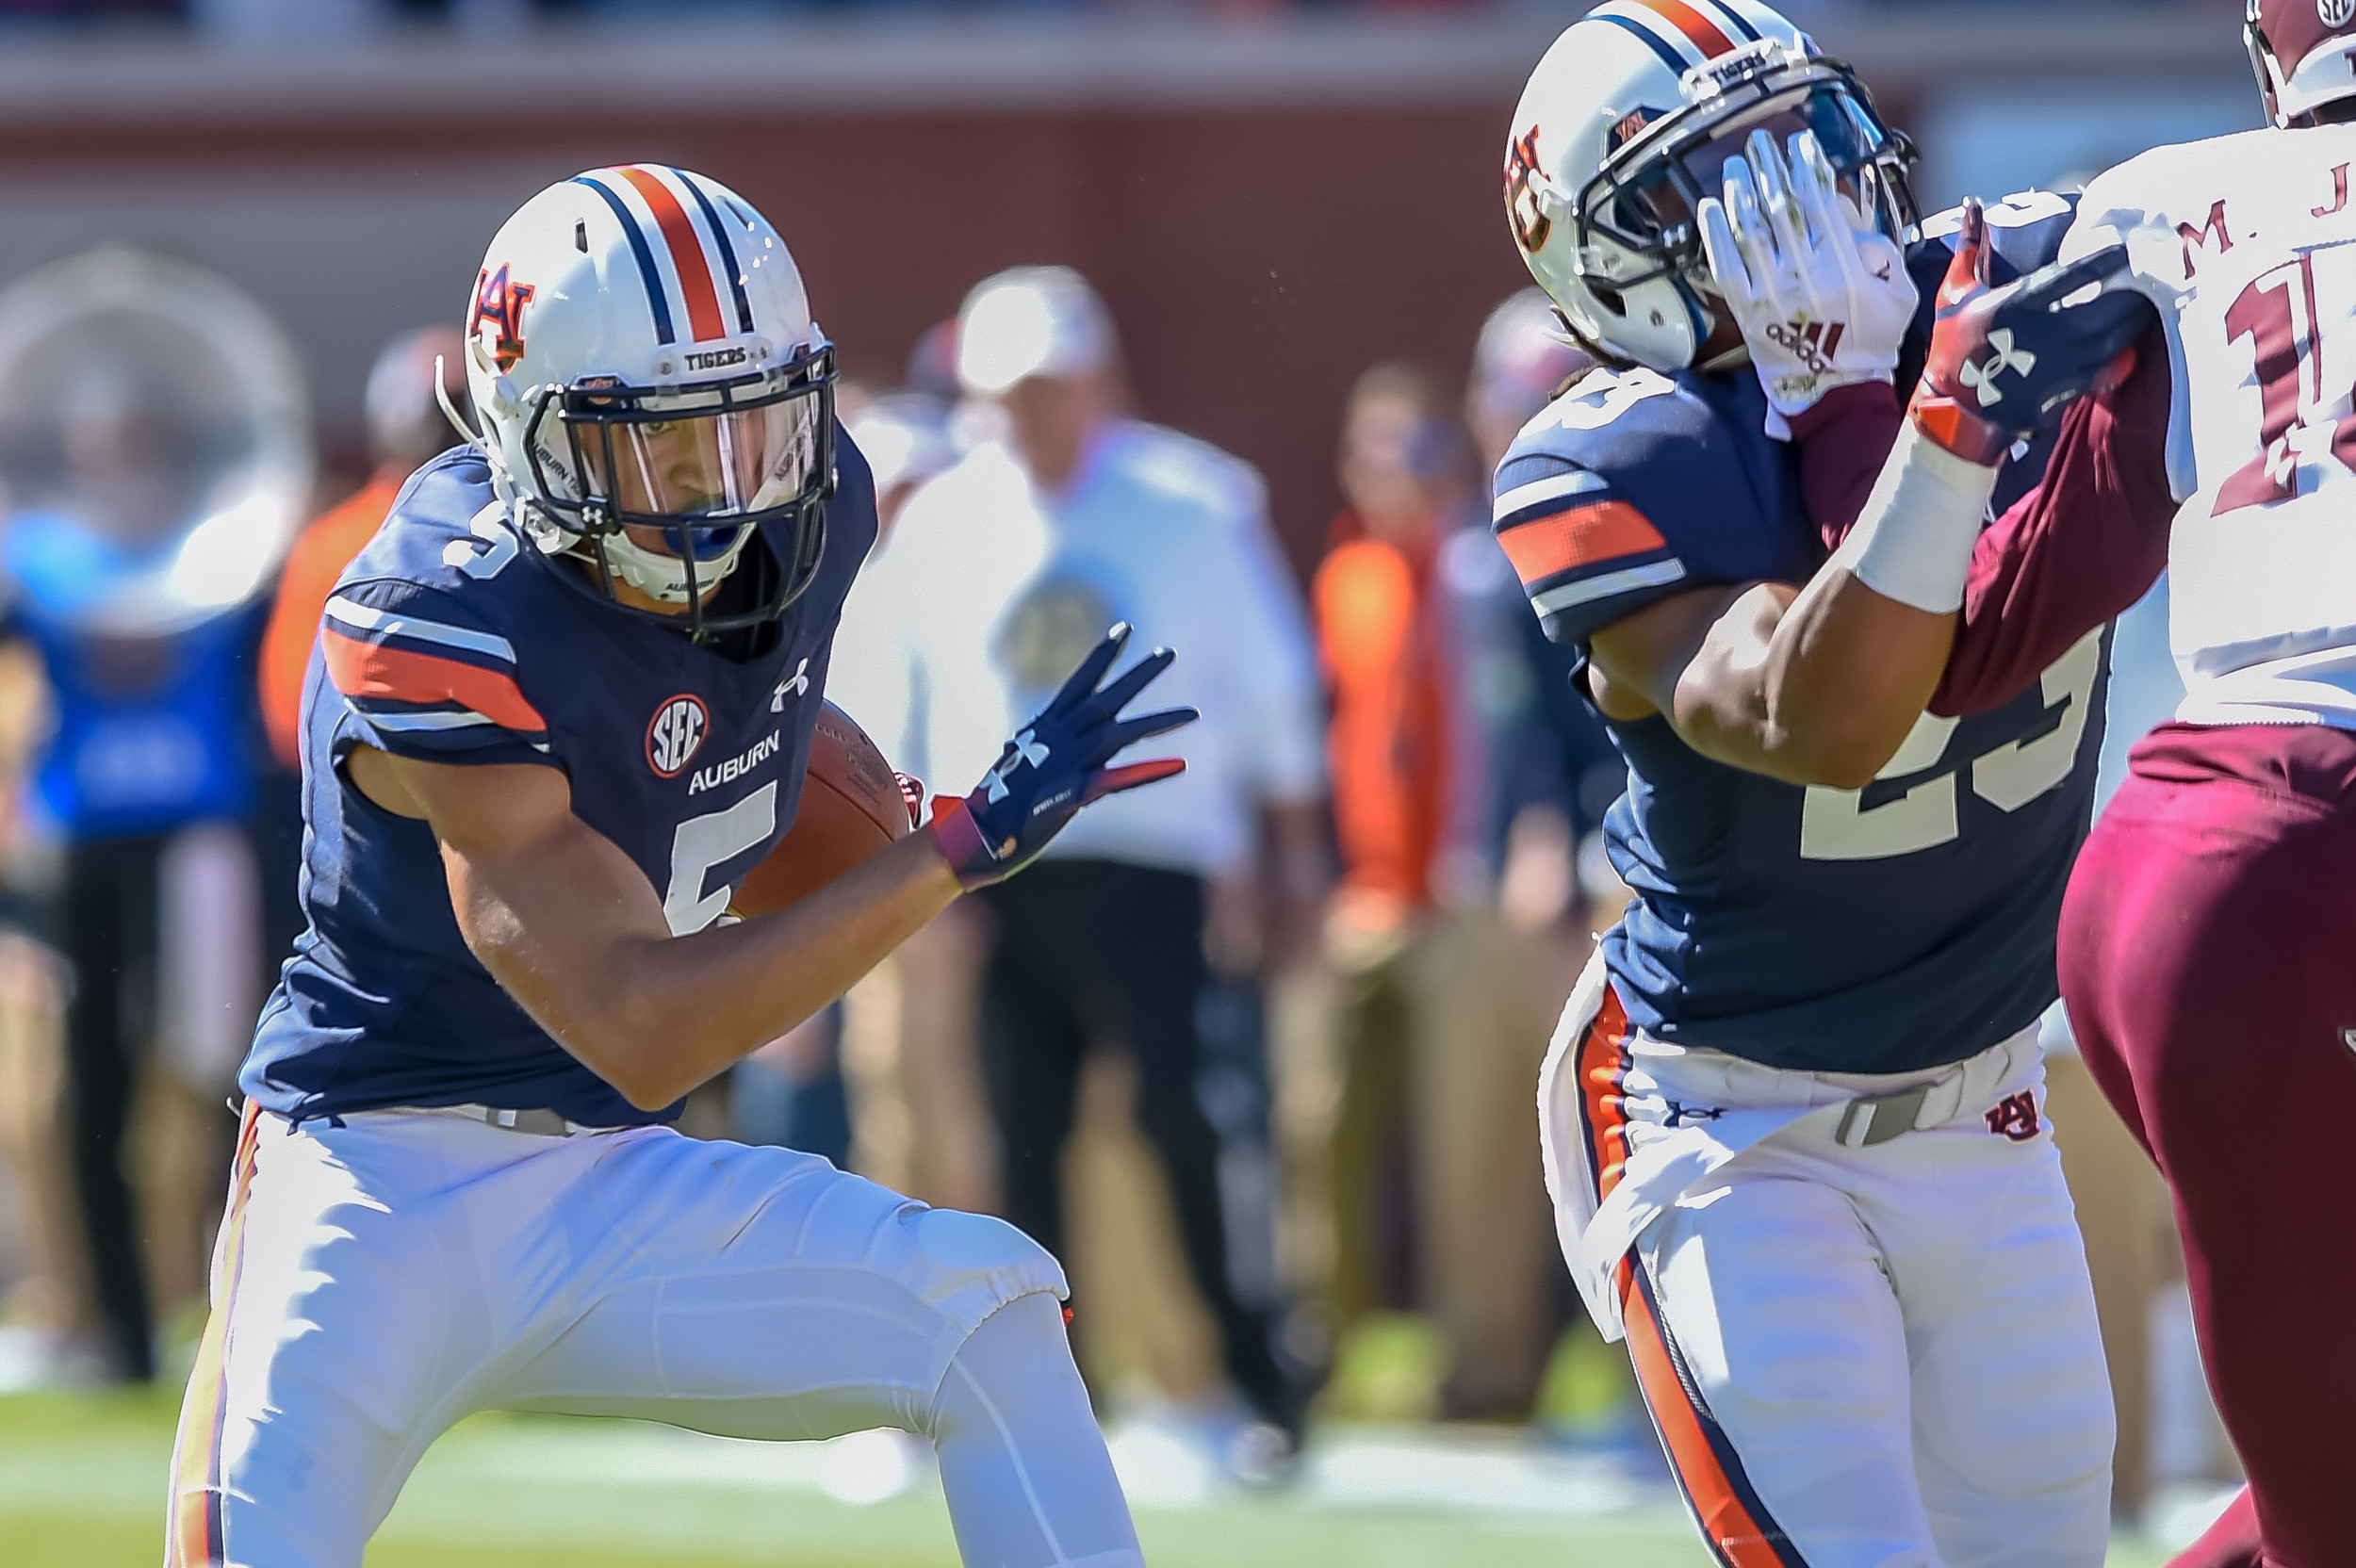 Auburn Tigers wide receiver Anthony Schwartz (5) runs behind the block of wide receiver Ryan Davis (23) during the first half of an NCAA football game against the Texas A&M Aggies Saturday, November 3, 2018, at Jordan-Hare Stadium in Auburn, Ala. (Photo by Jeff Johnsey)